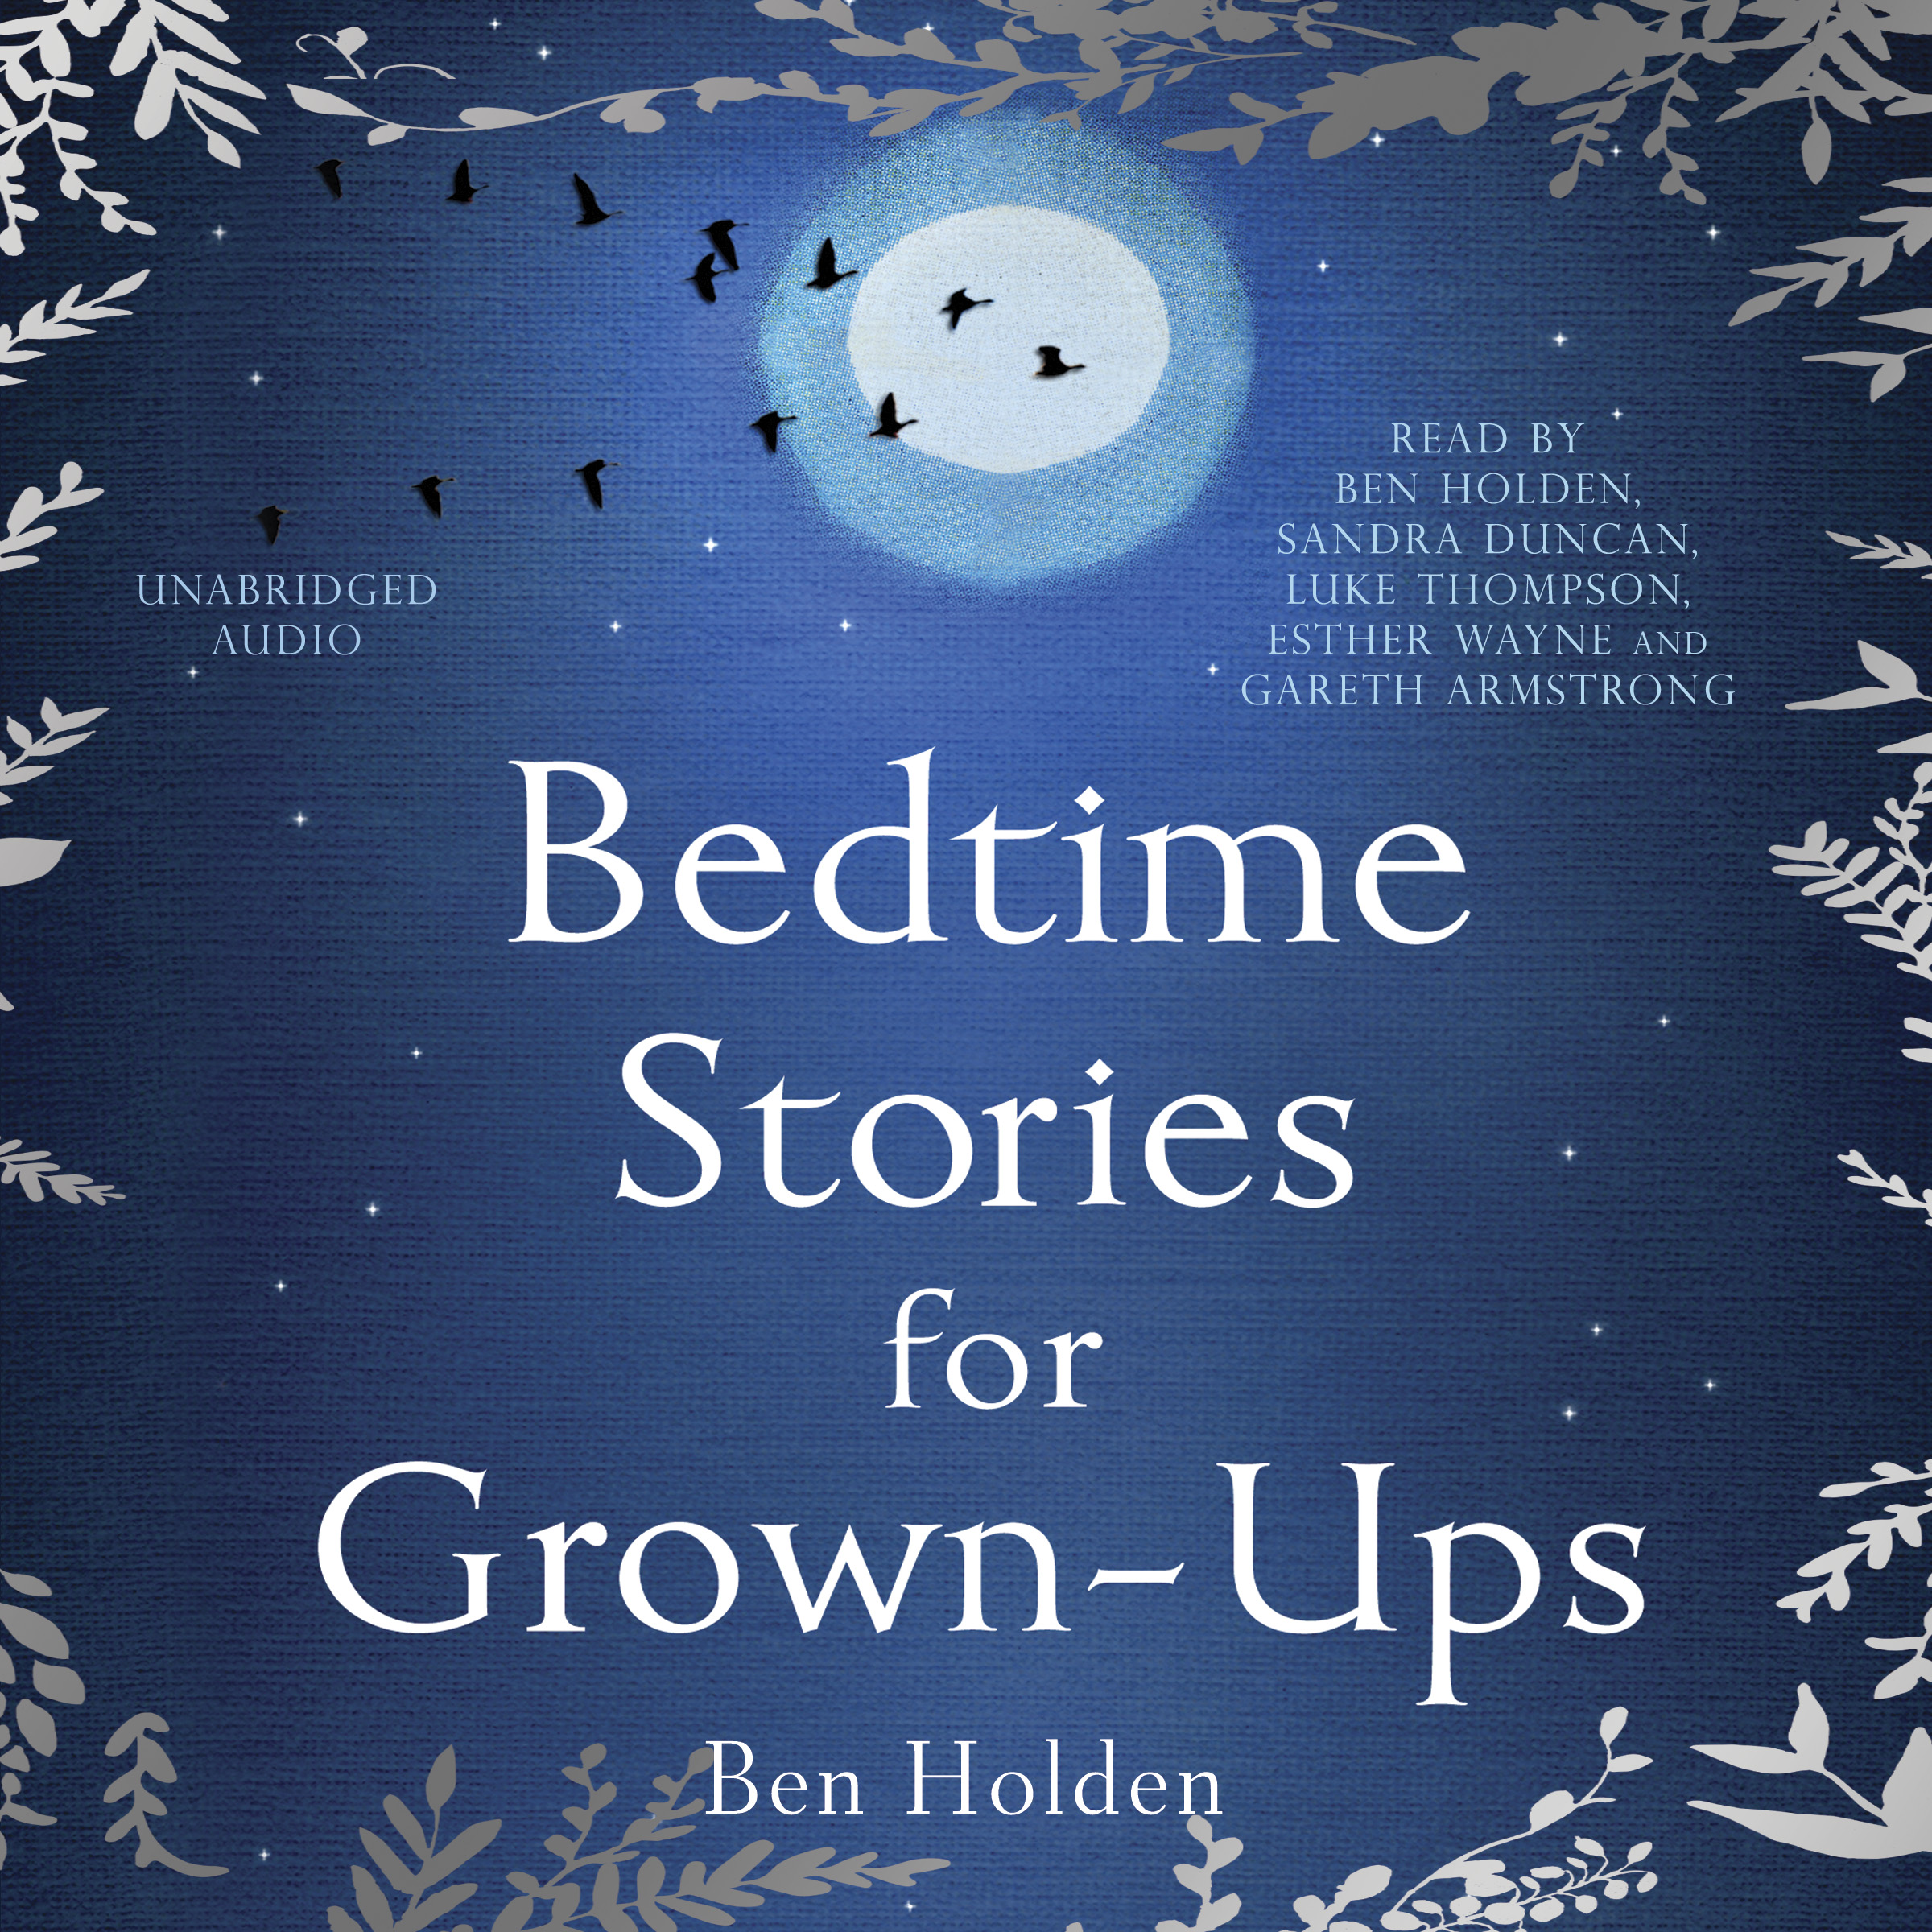 Bedtime stories for grown ups 9781471164149 hr